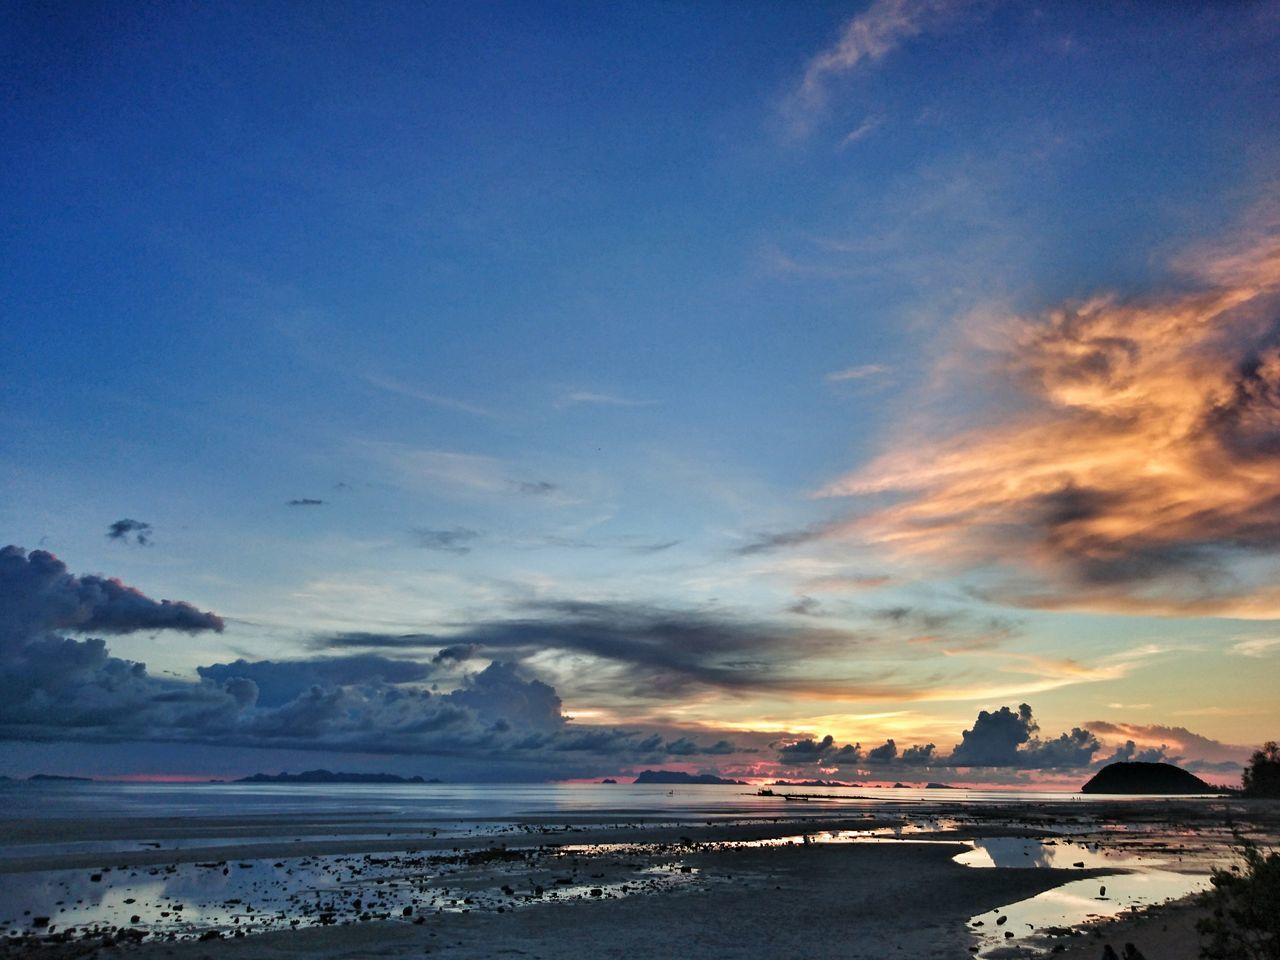 Scenic View Of Beach Against Cloudy Blue Sky At Dusk